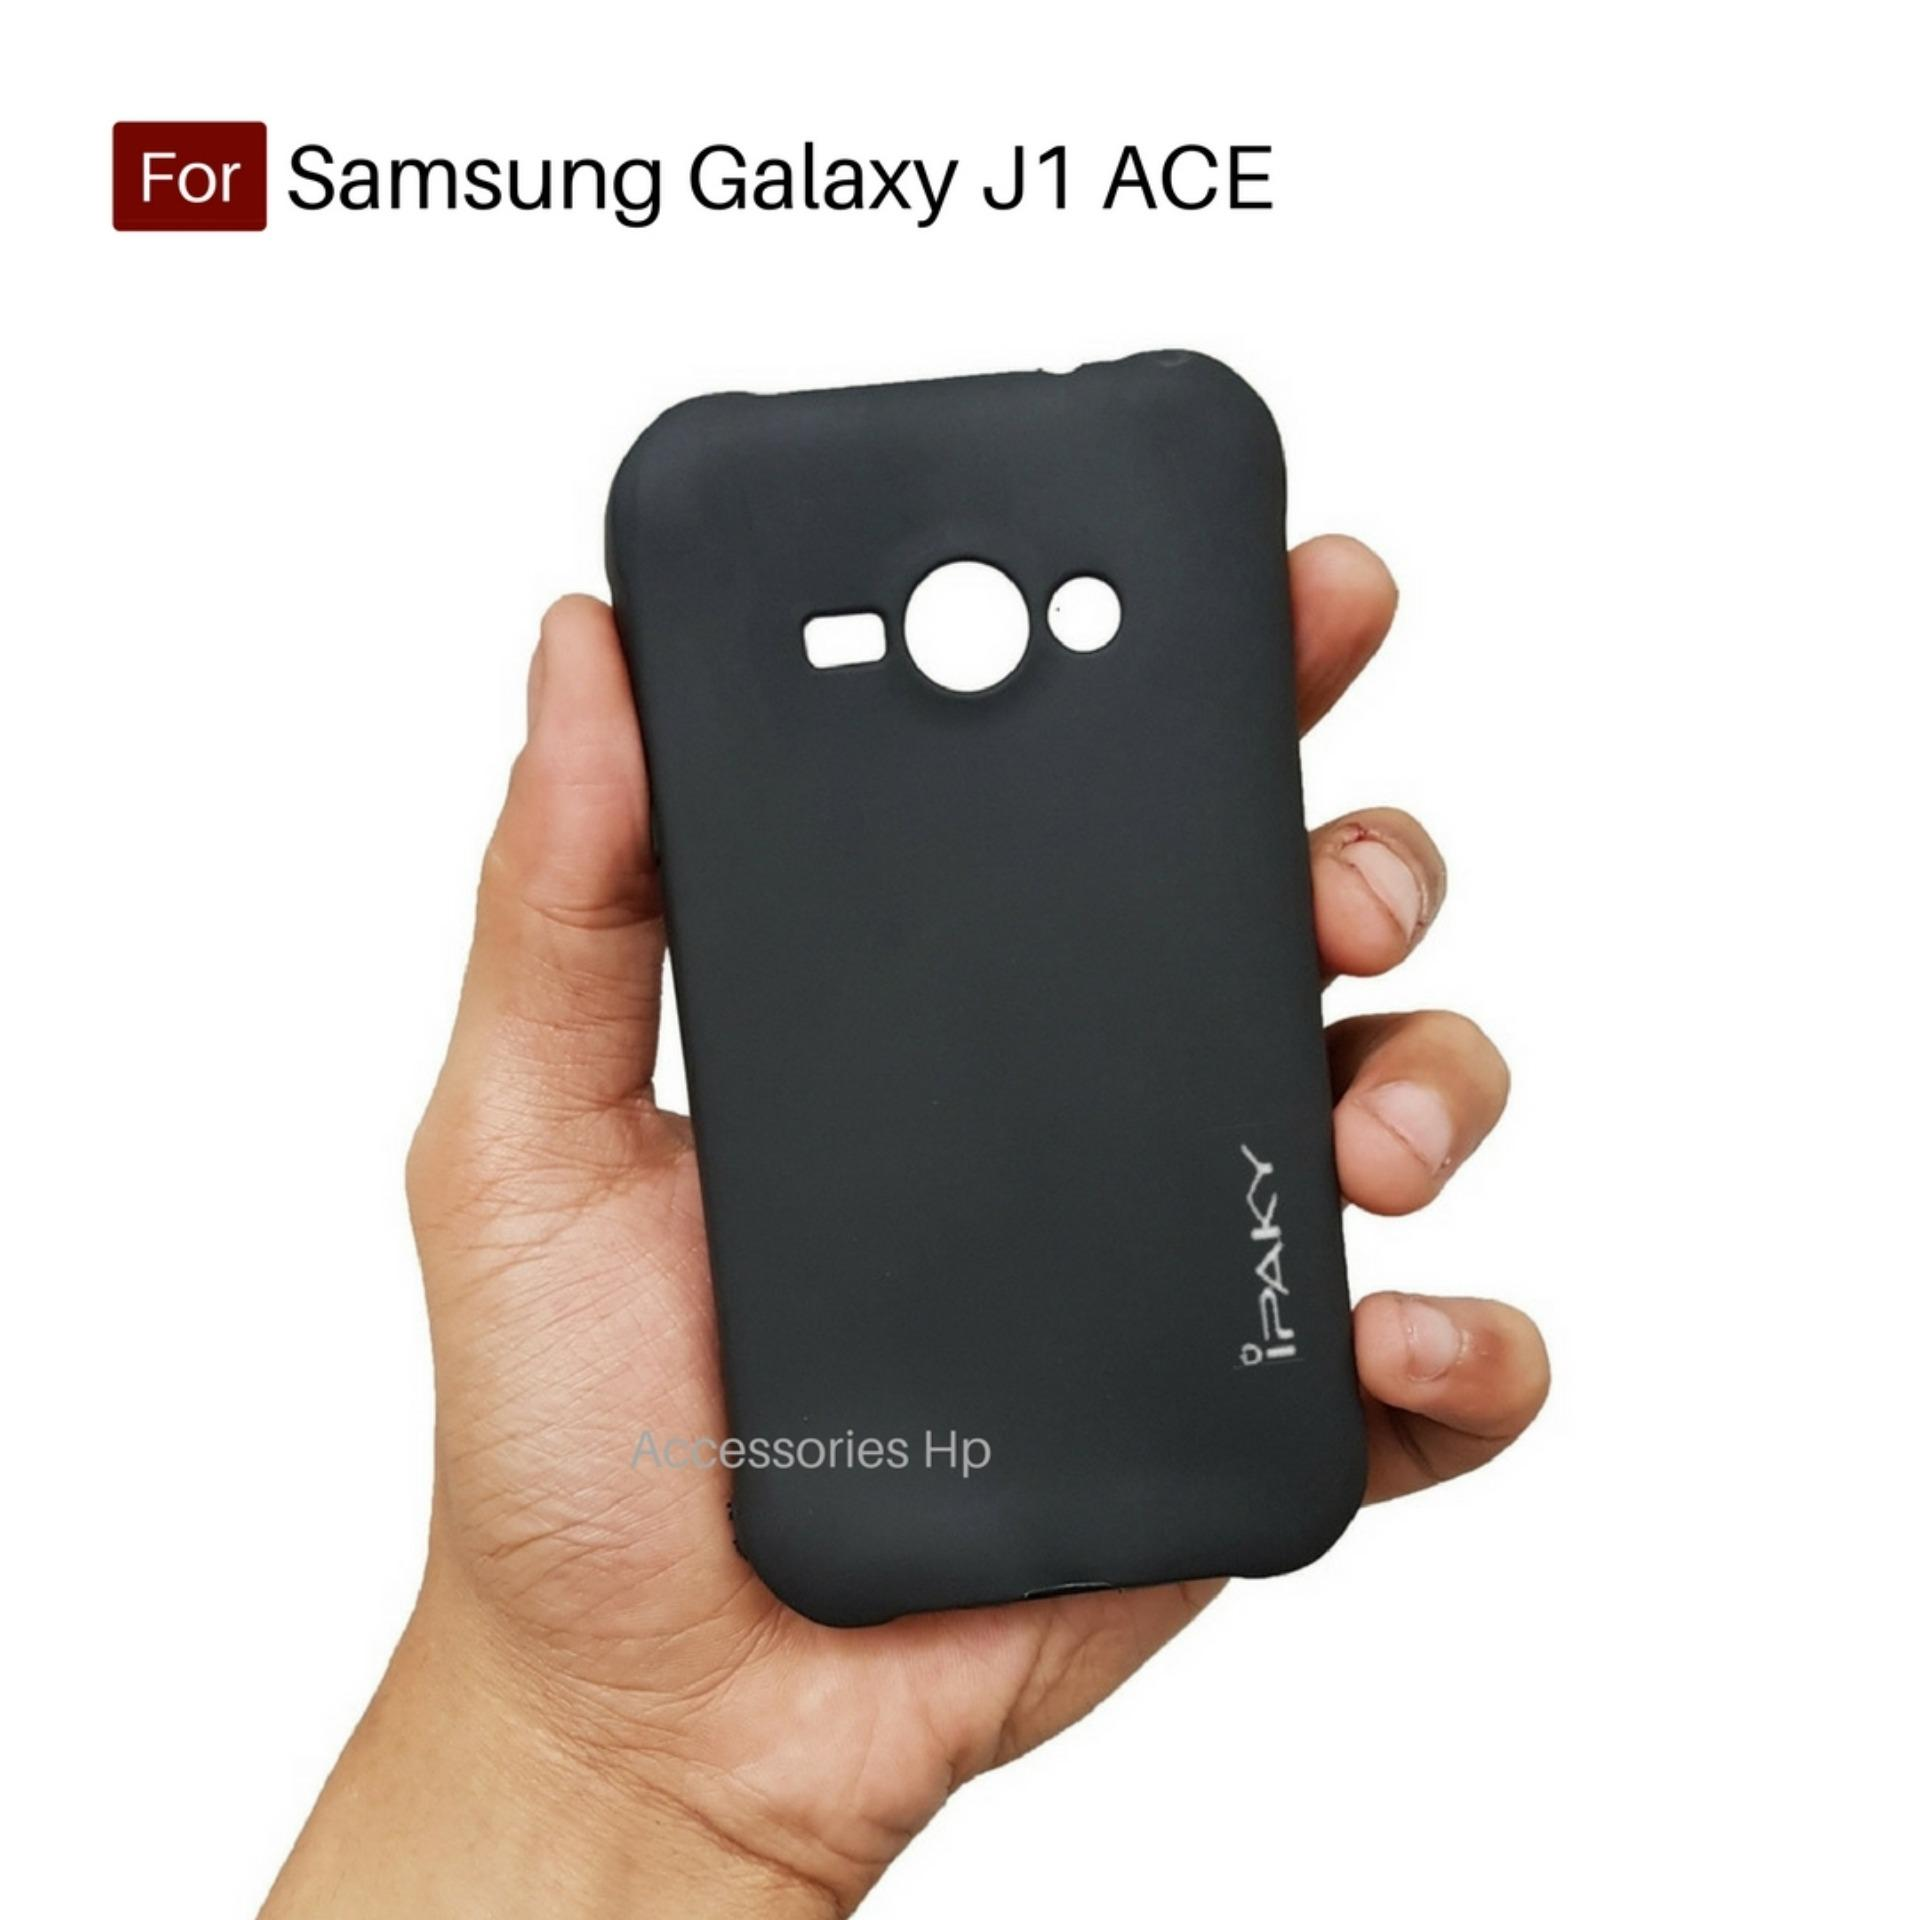 Accessories Hp iPaky Super Slim Matte Anti Fingerprint Hybrid Case For Samsung Galaxy J1 Ace - Black